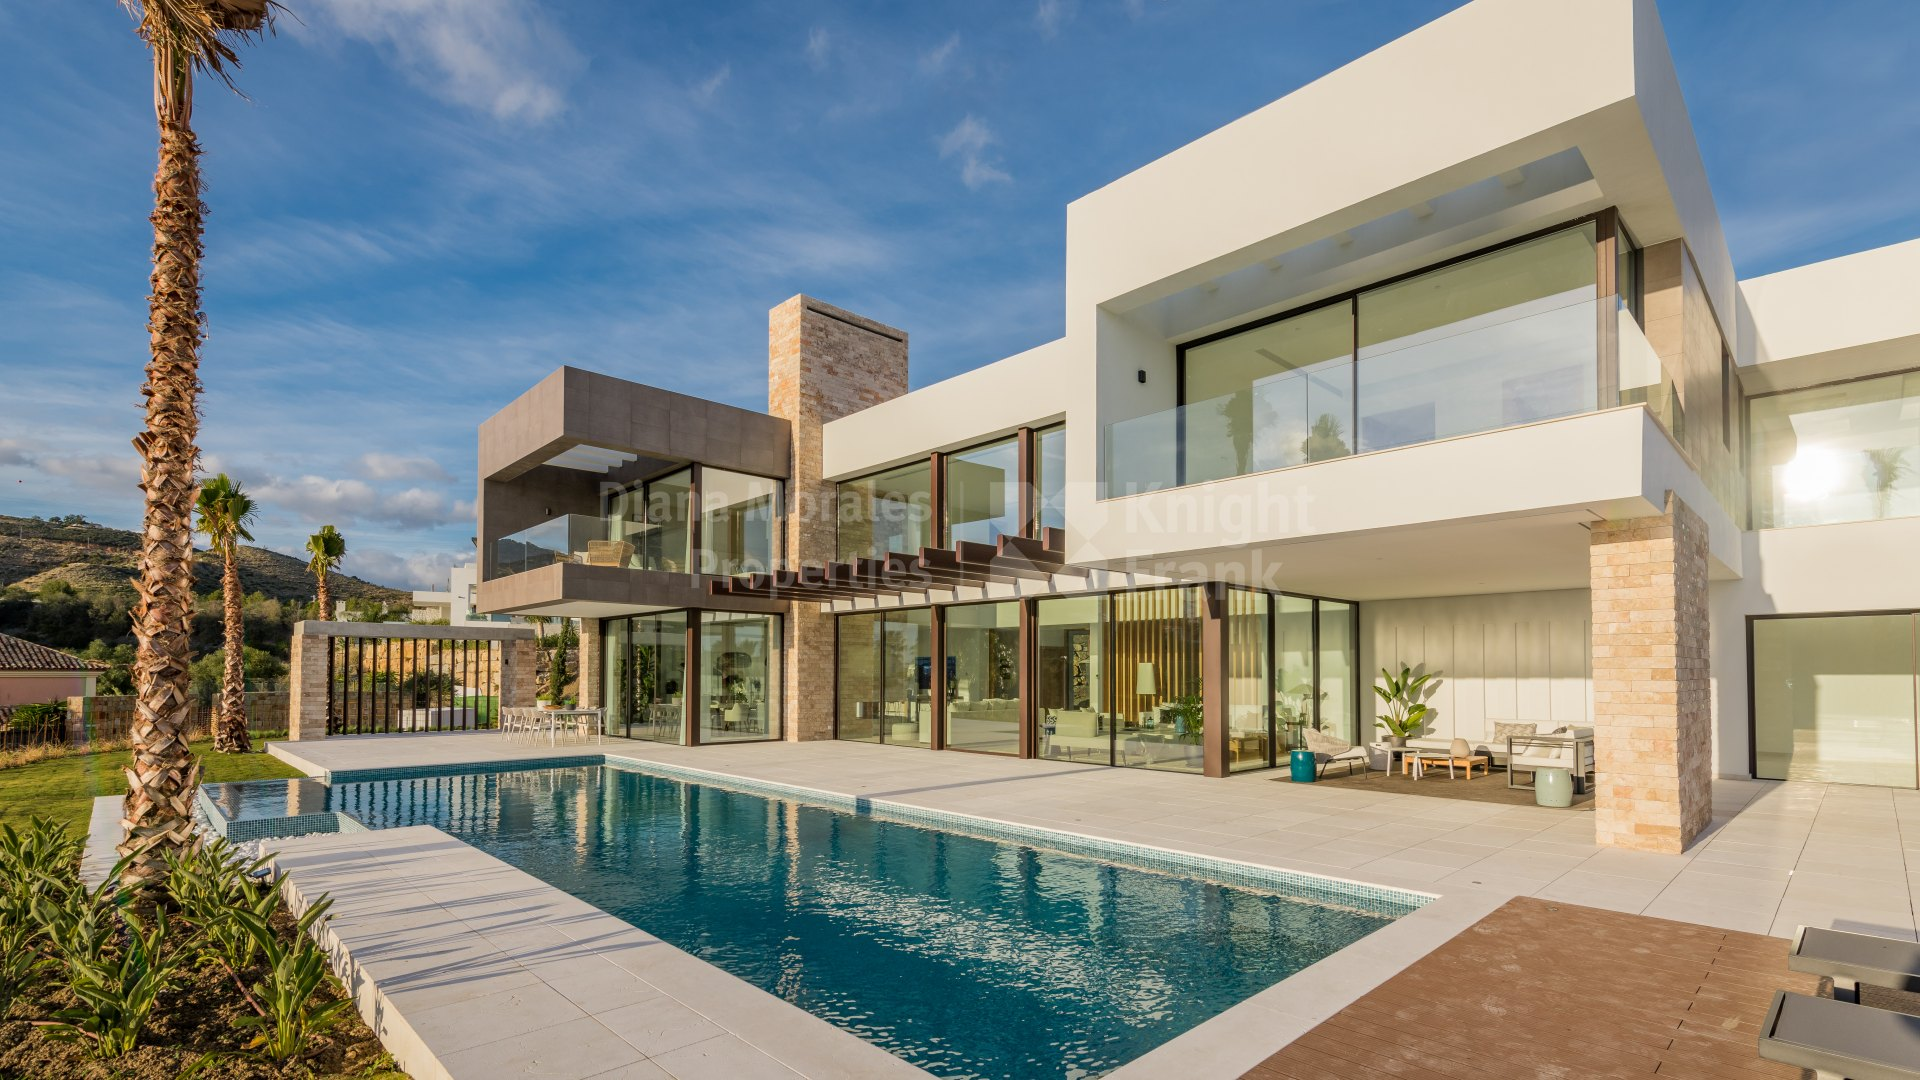 La Alqueria, New modern family home